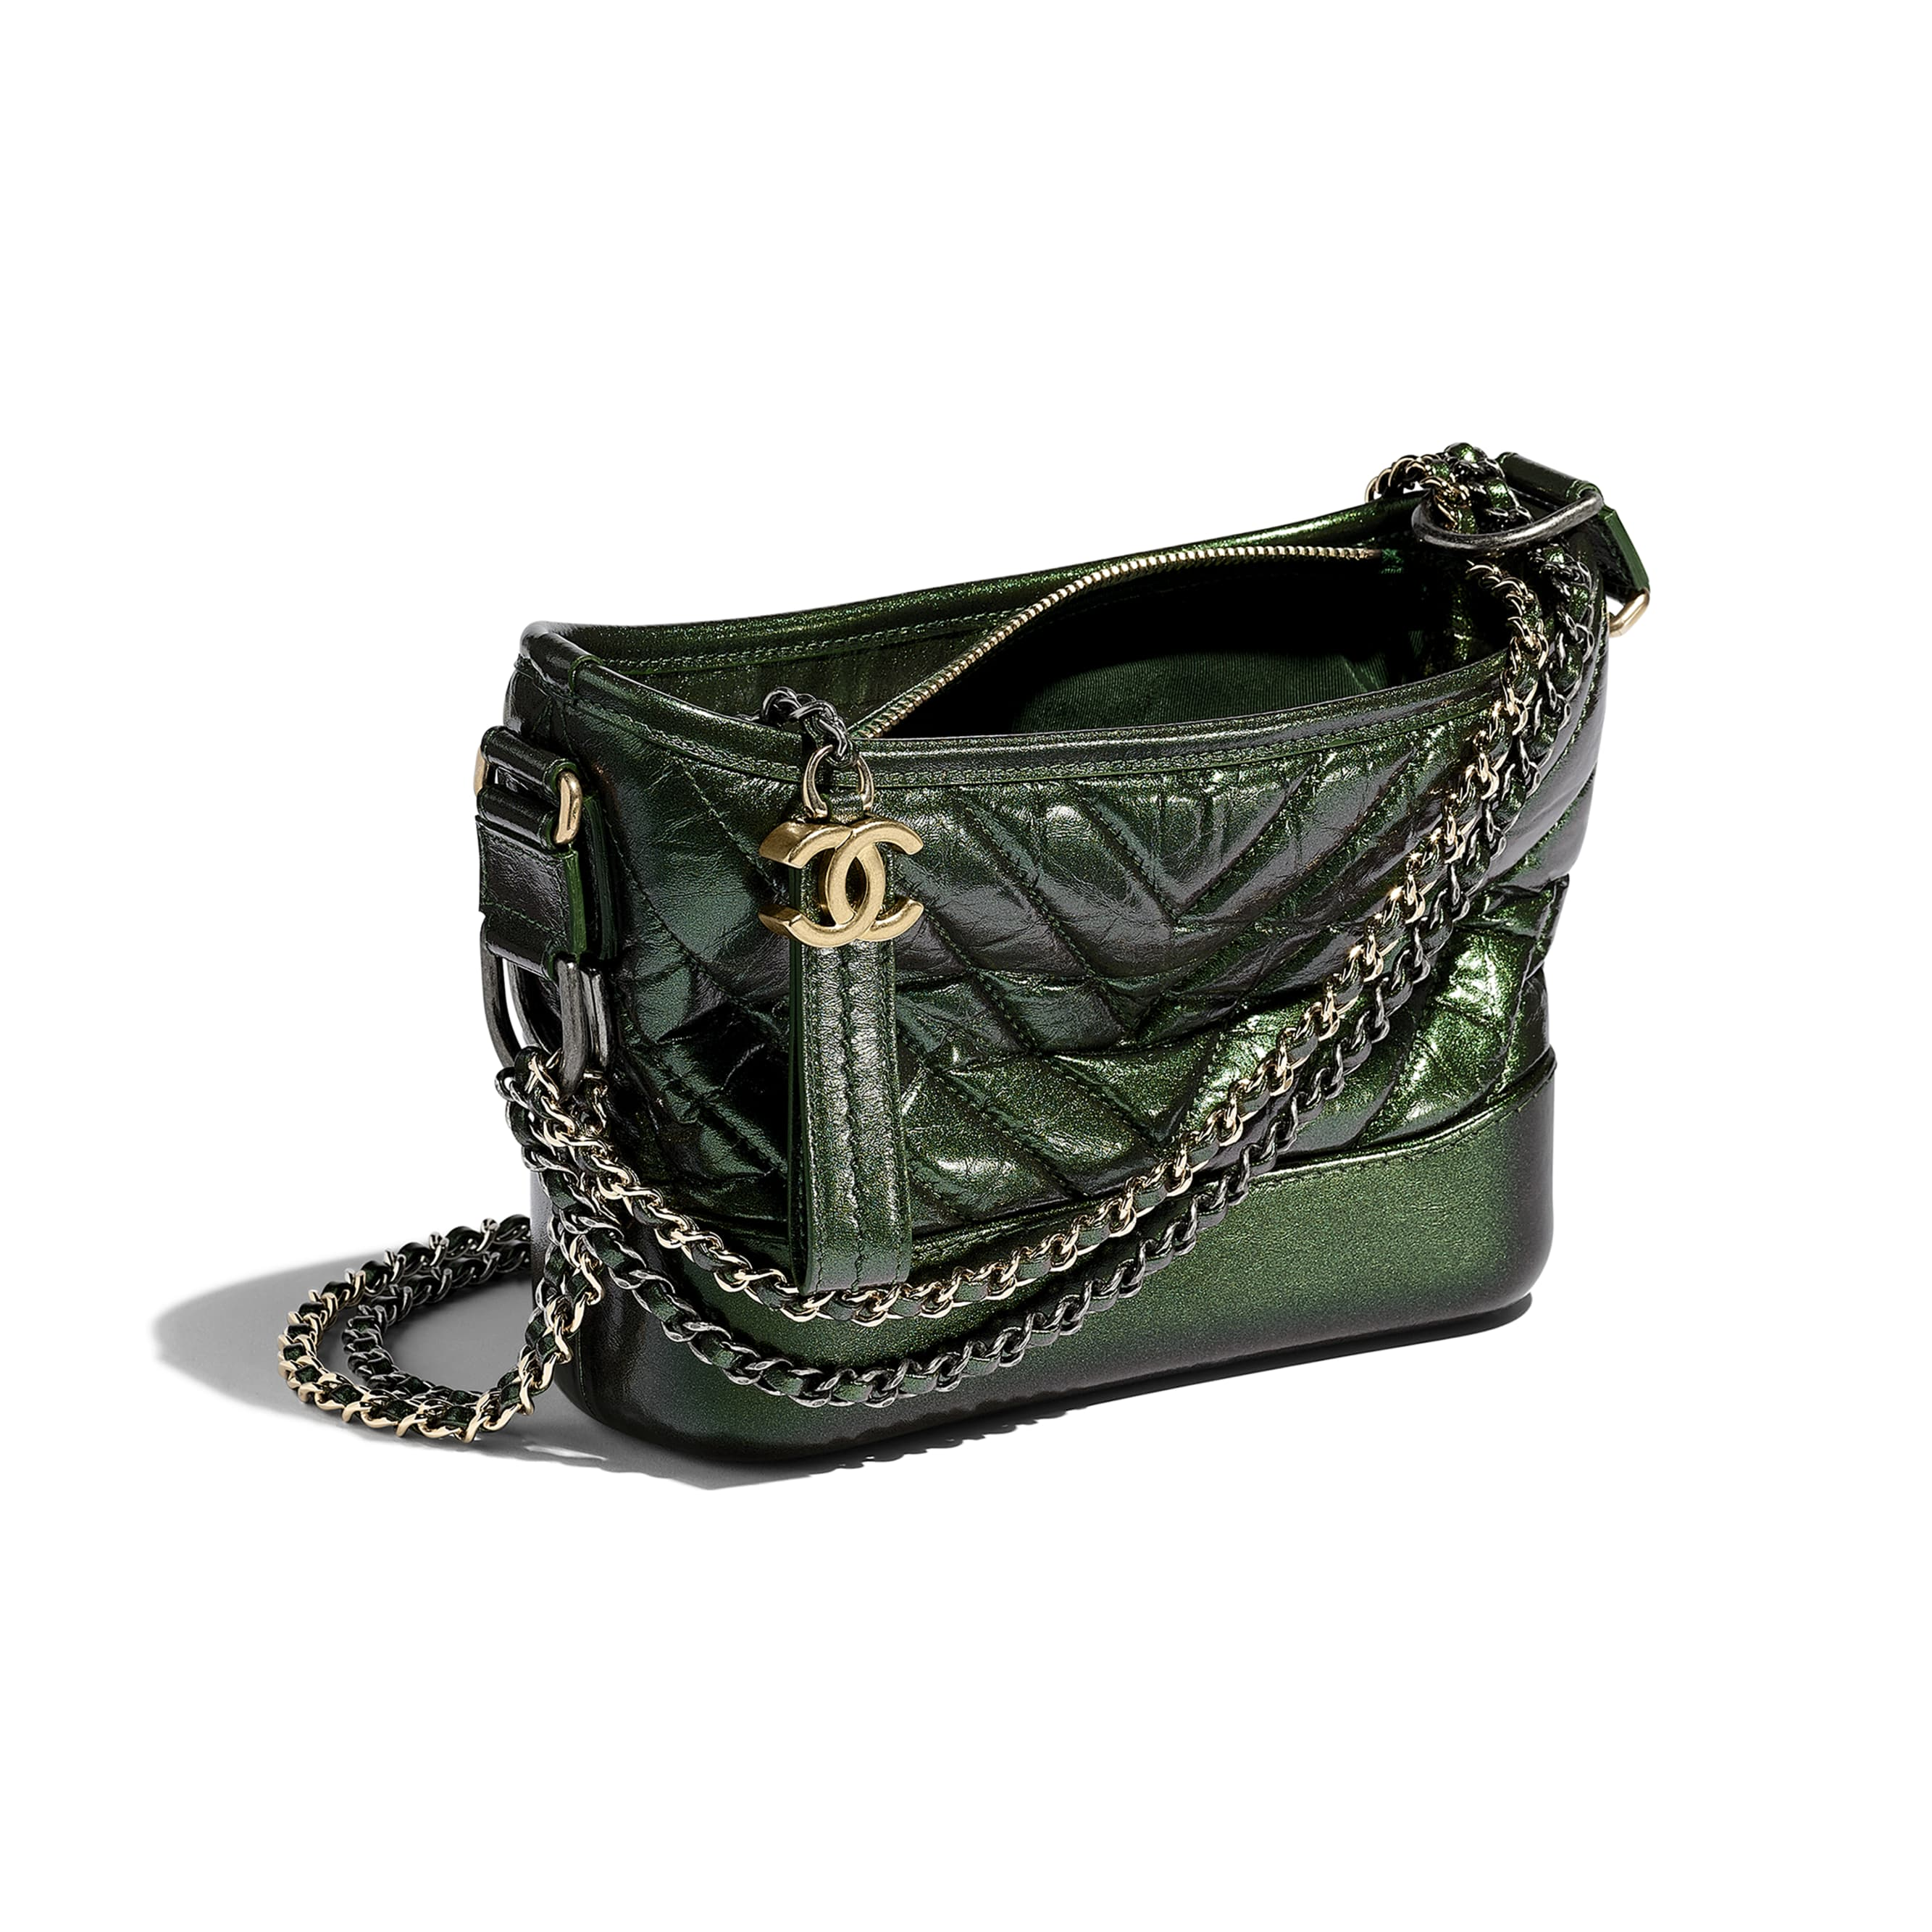 CHANEL'S GABRIELLE Small Hobo Bag - Green - Aged Calfskin, Silver-Tone & Gold-Tone Metal - CHANEL - Other view - see standard sized version